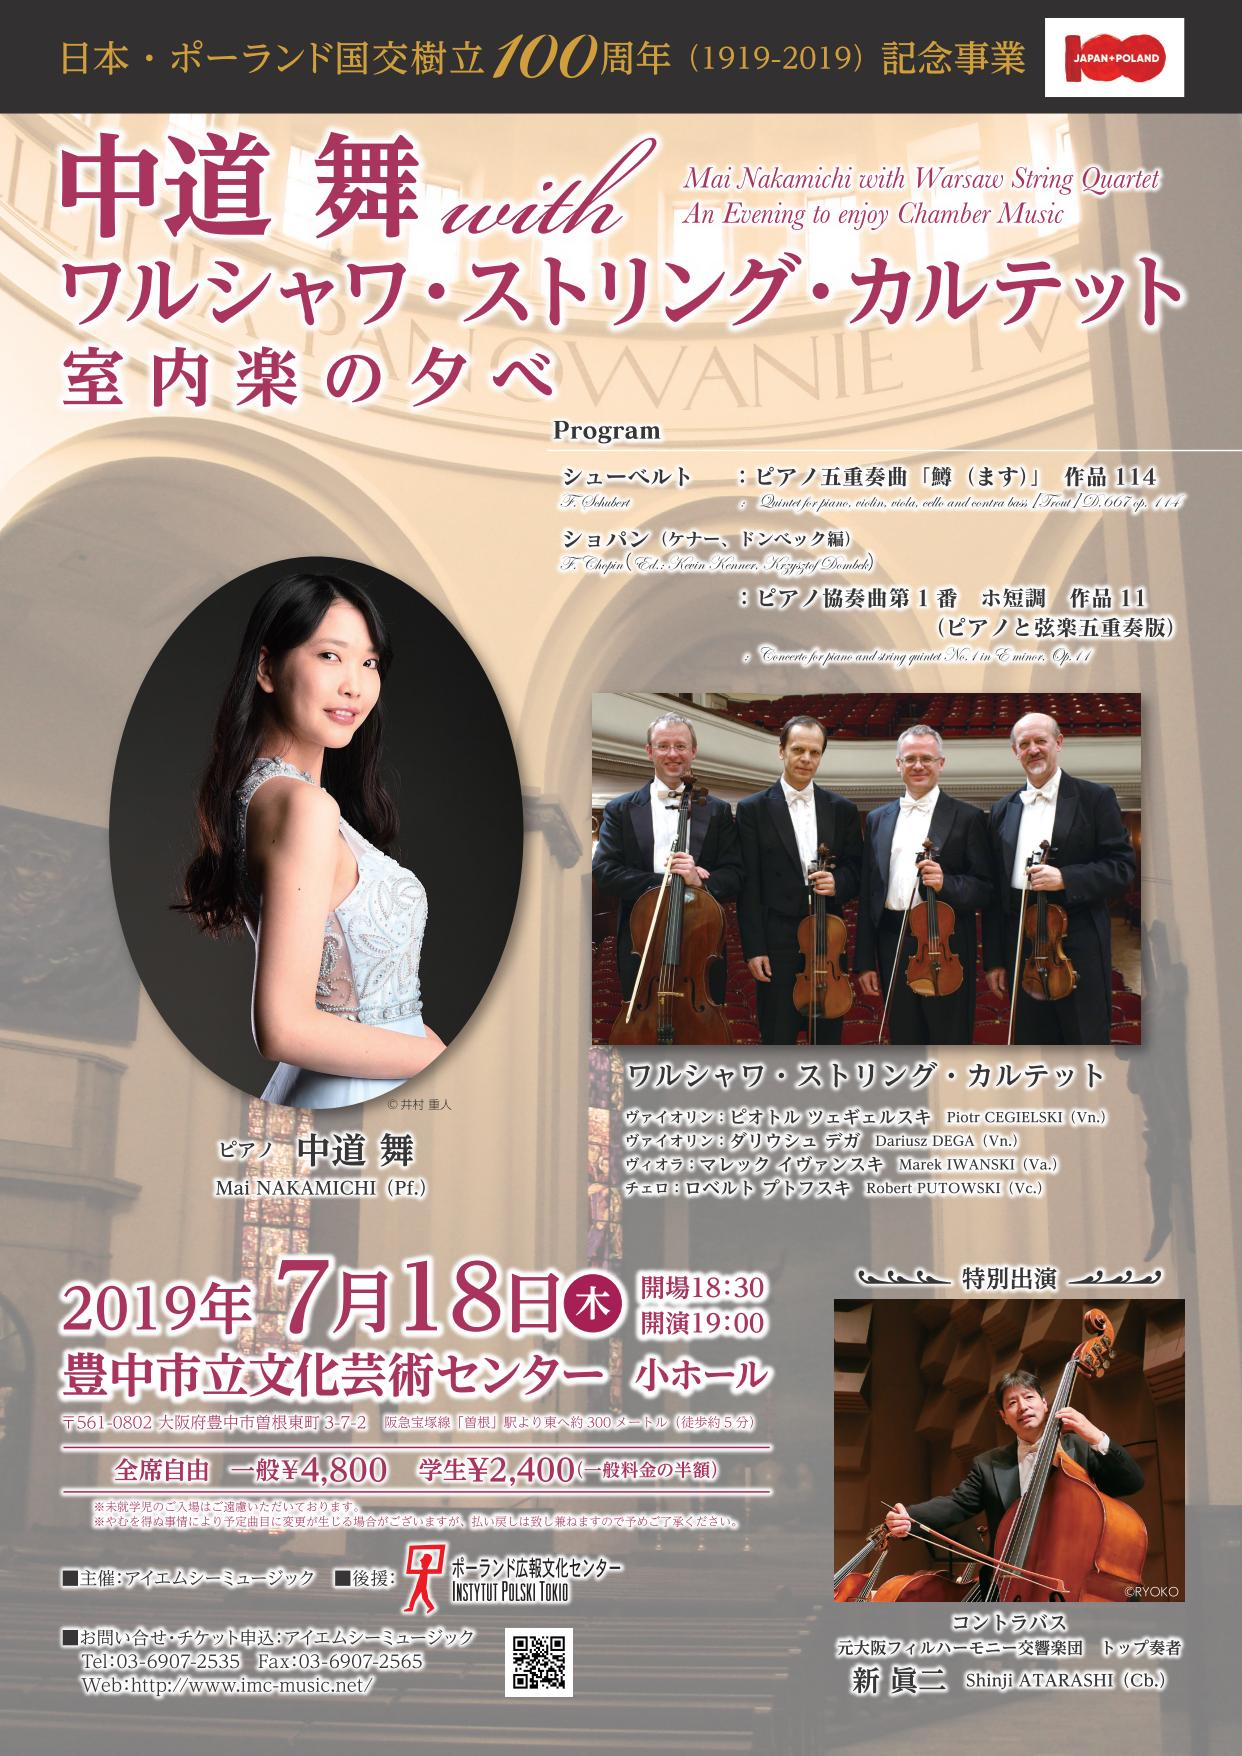 Mai Nakamichi with Warsaw String Quartet     An Evening to enjoy Chamber Music